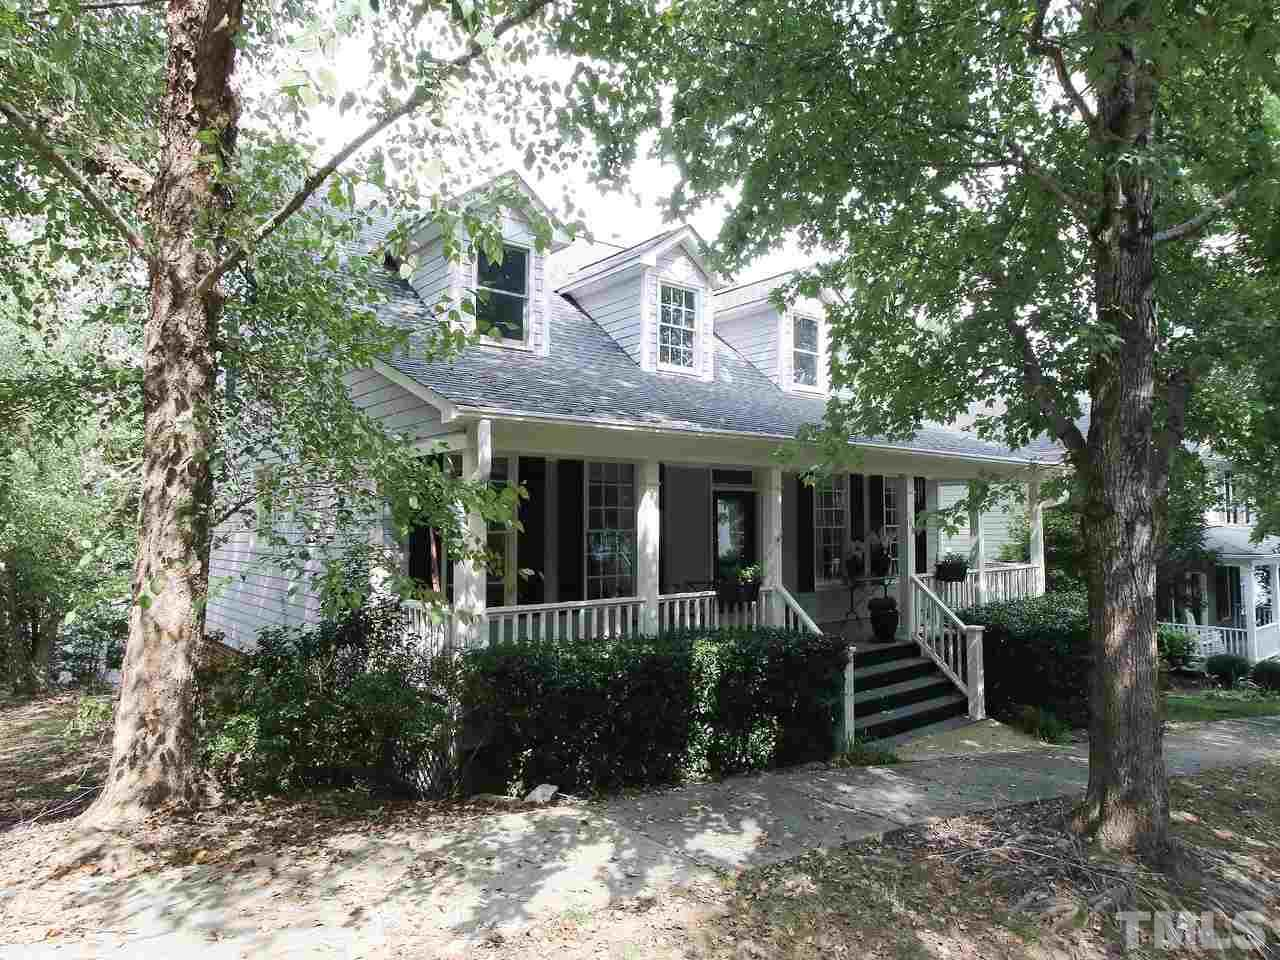 104 Meeting Street Chapel Hill Home Listings - RE/MAX Winning Edge North Carolina Real Estate